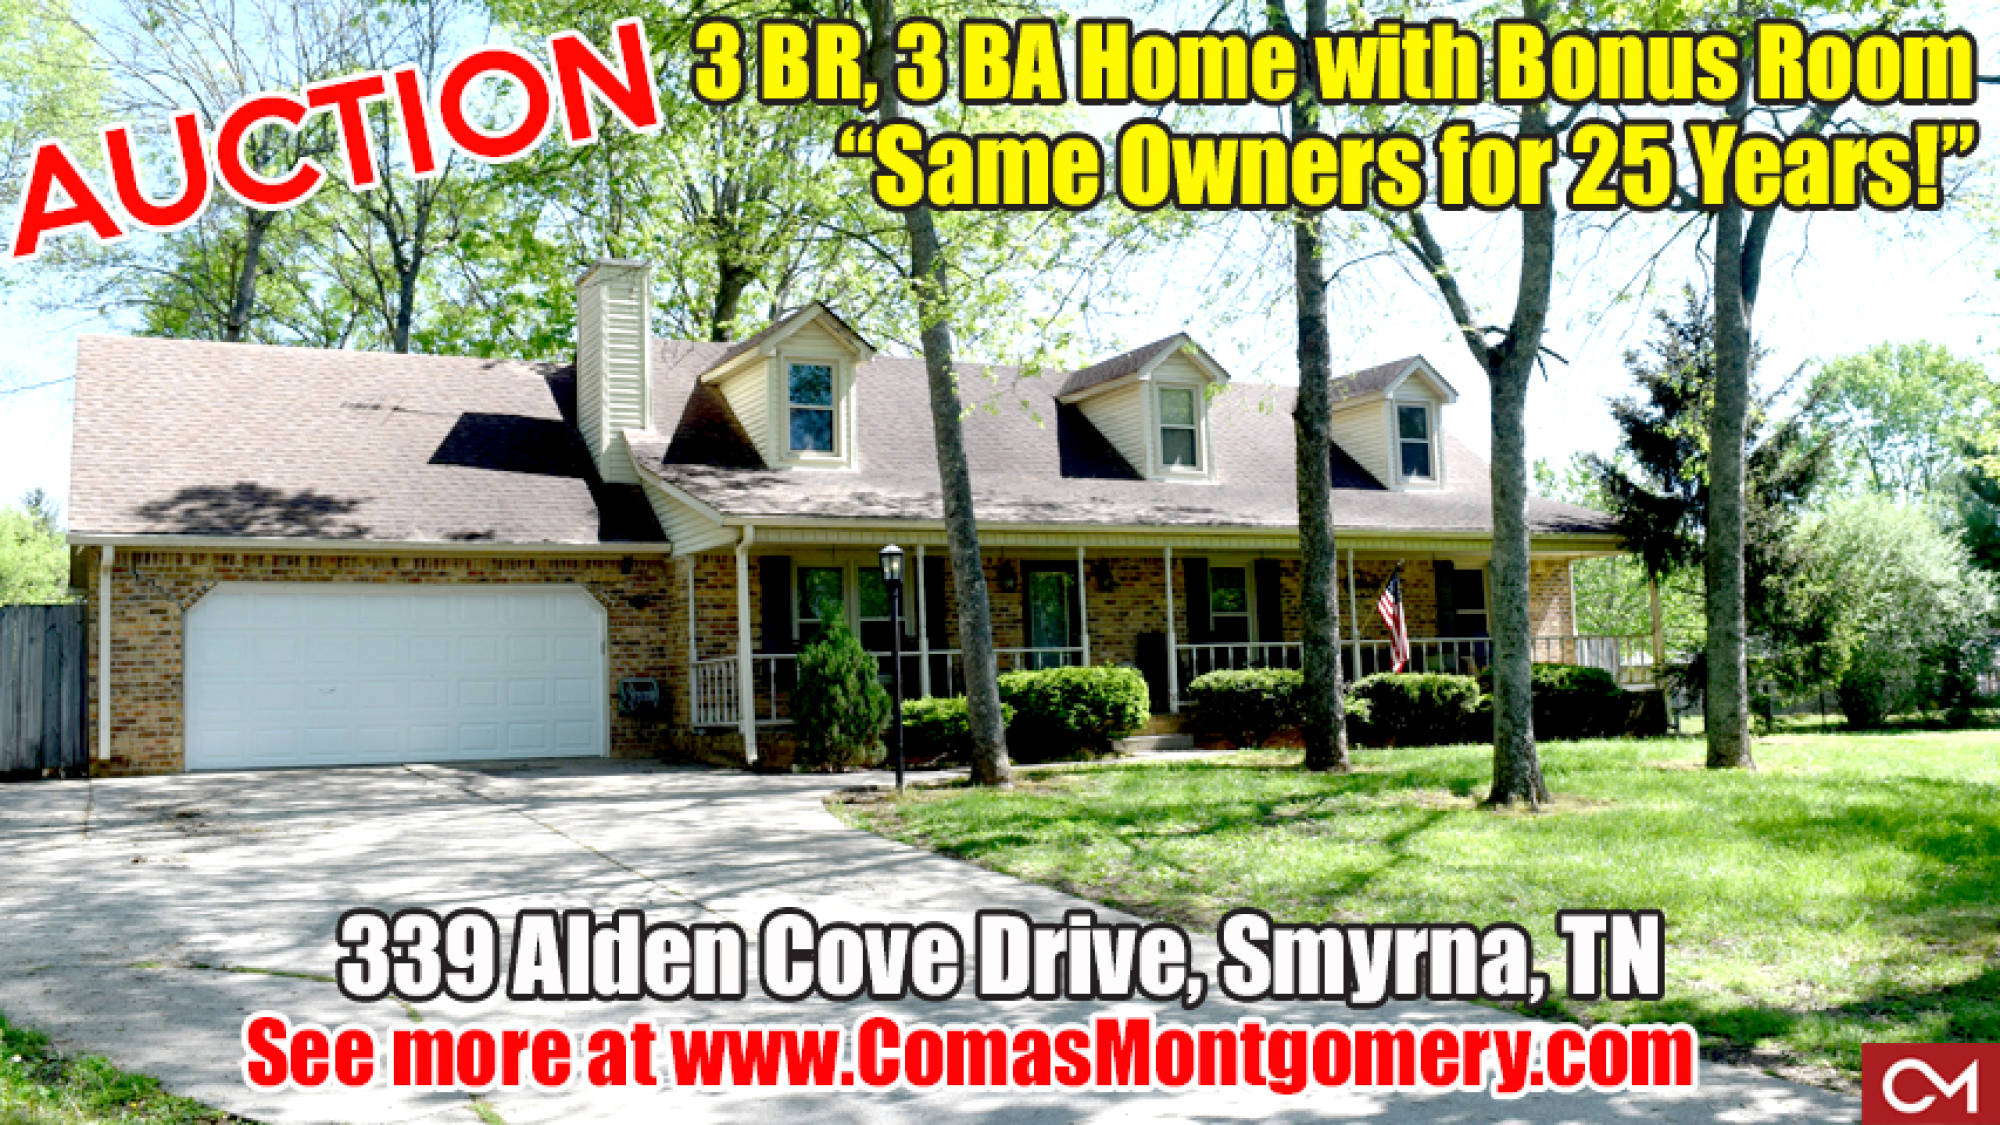 Auction, Real Estate, Home, For Sale, House, Smyrna, Murfreesboro, Rutherford, Comas, Montgomery, Bonus Room